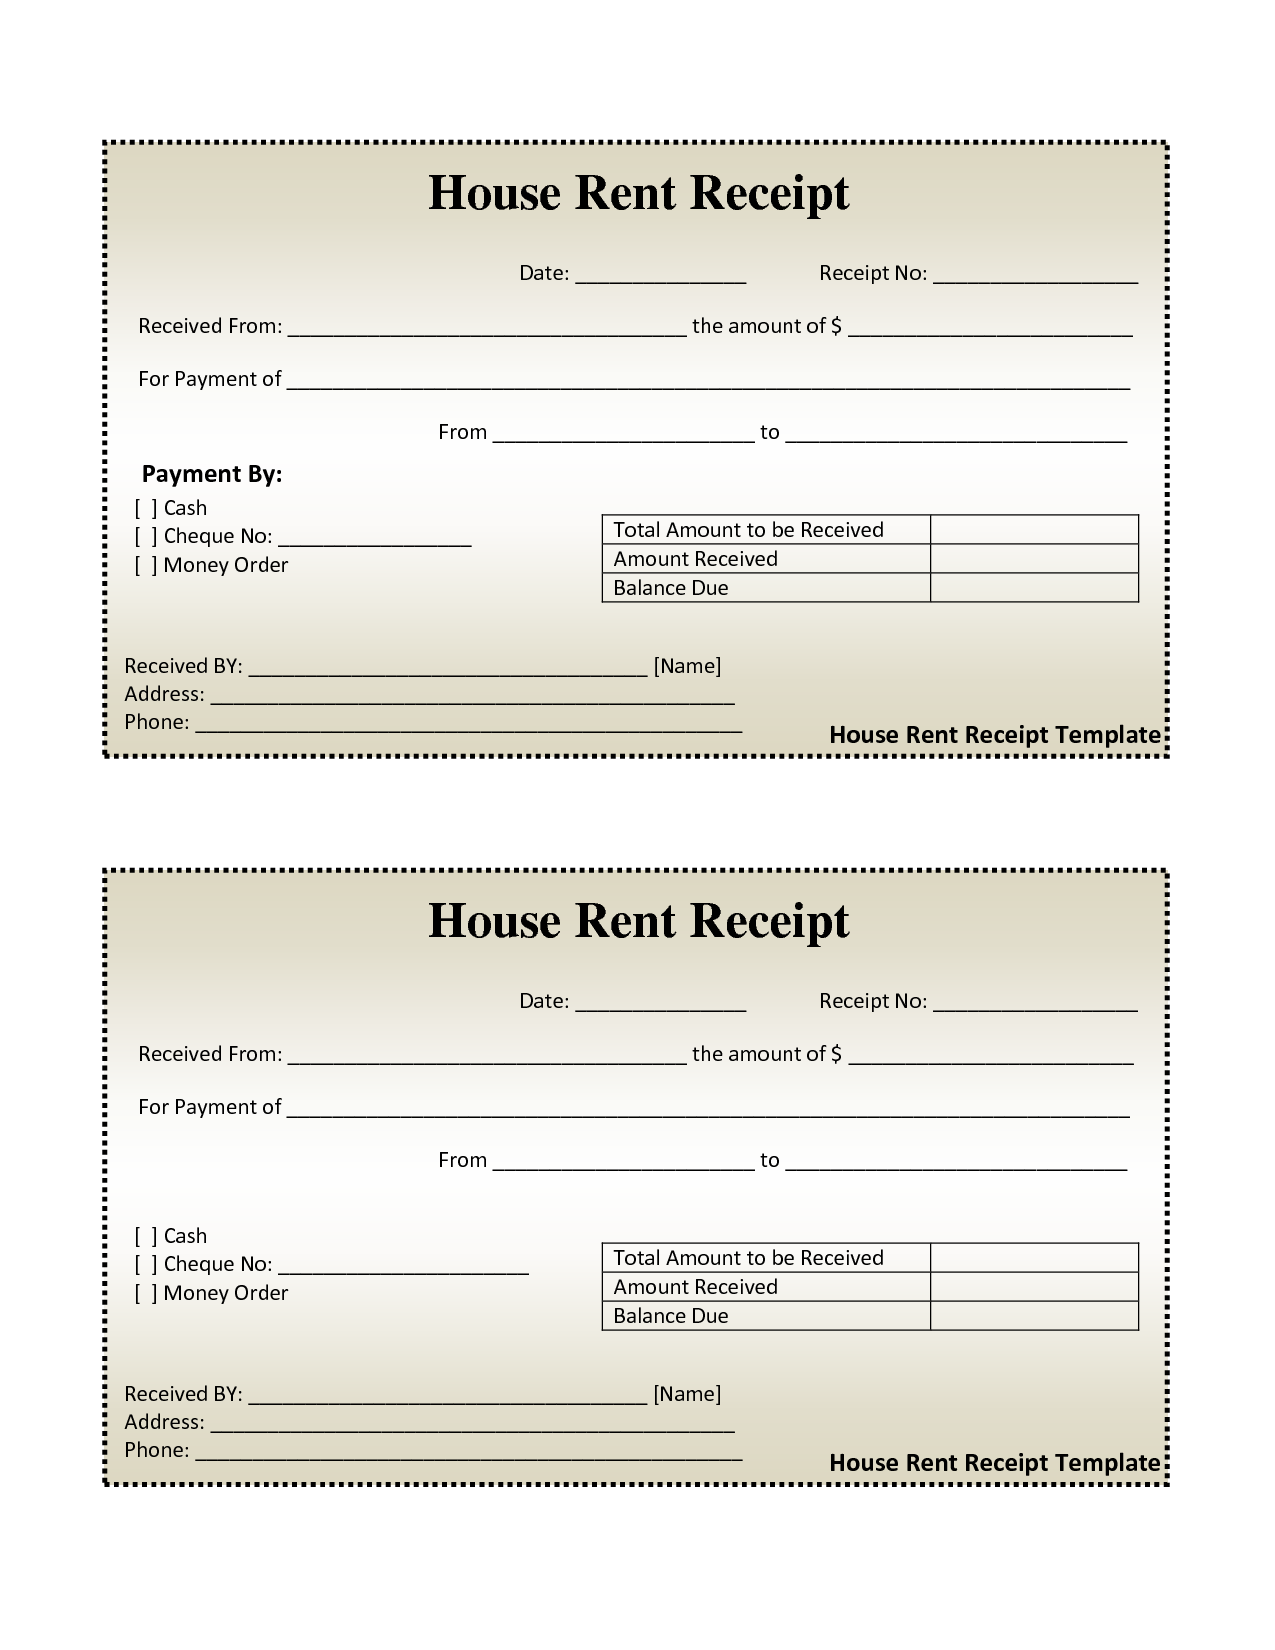 free house rental invoice – House Rent Receipt